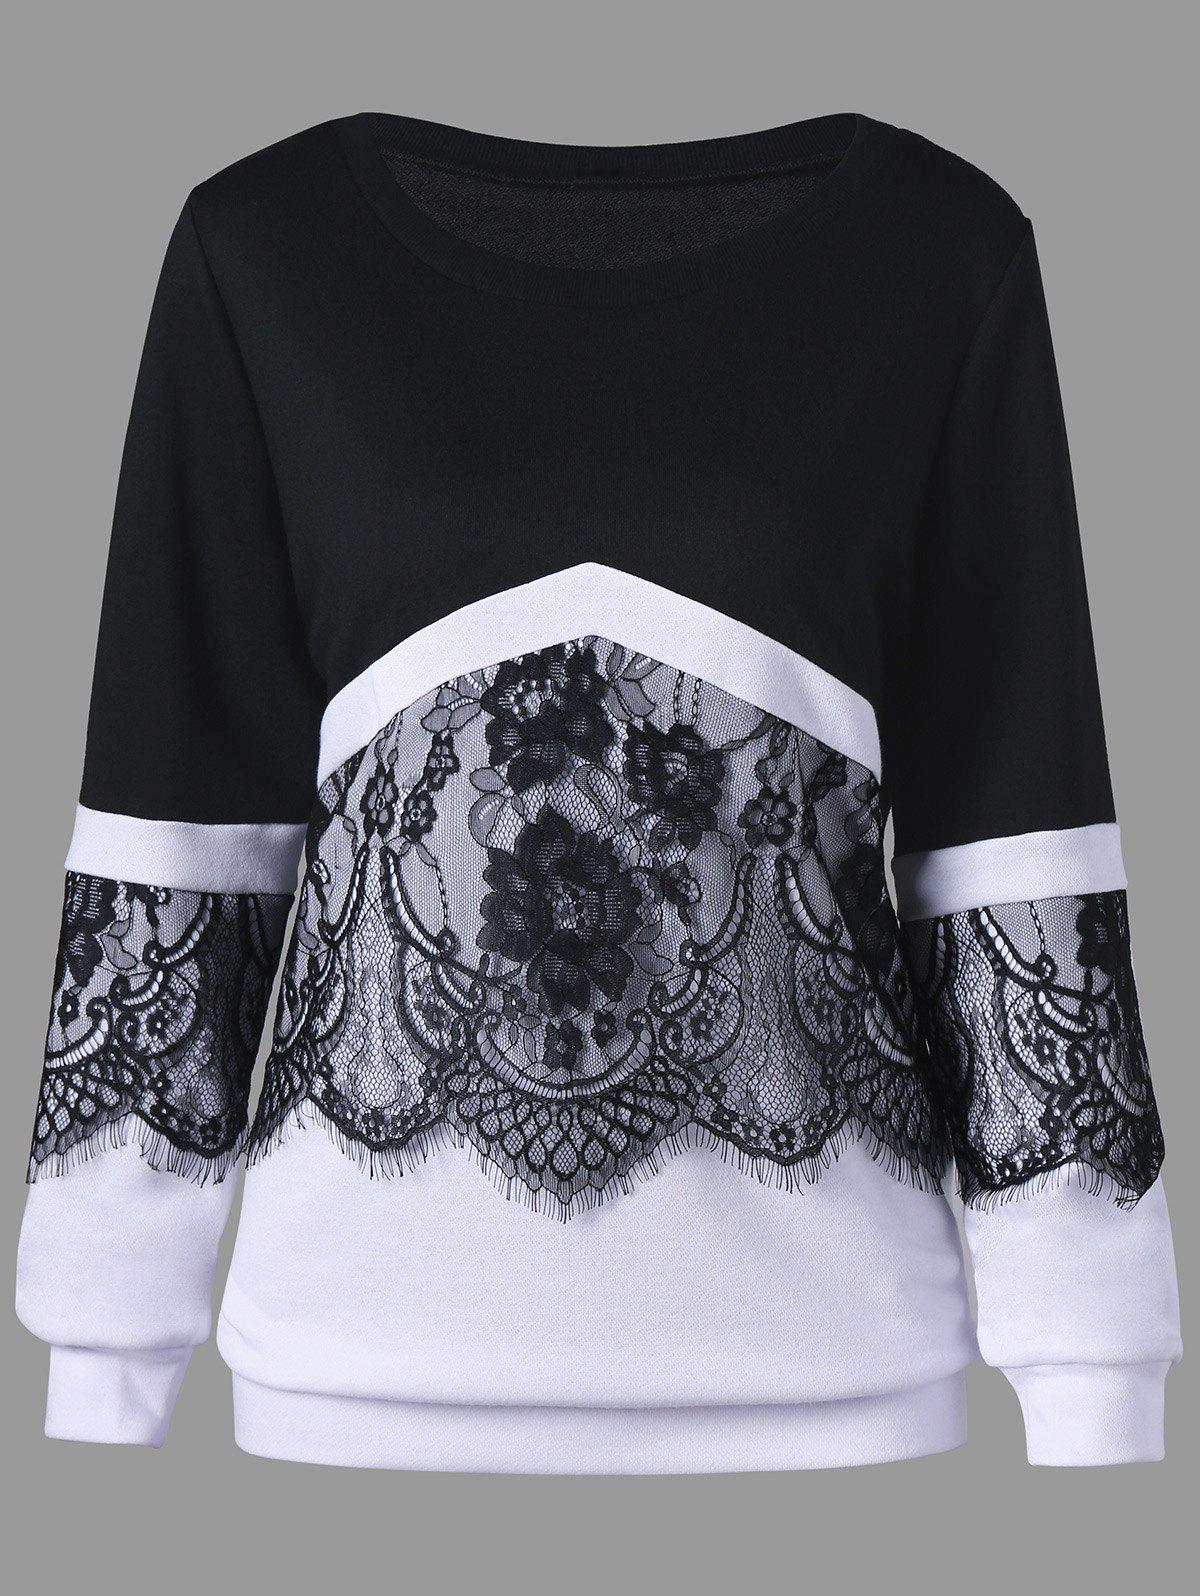 Plus Size Two Tone Eyelash Lace Trim SweatshirtWOMEN<br><br>Size: 3XL; Color: WHITE AND BLACK; Material: Polyester; Shirt Length: Regular; Sleeve Length: Full; Style: Fashion; Pattern Style: Floral; Season: Fall,Spring; Weight: 0.4800kg; Package Contents: 1 x Sweatshirt;